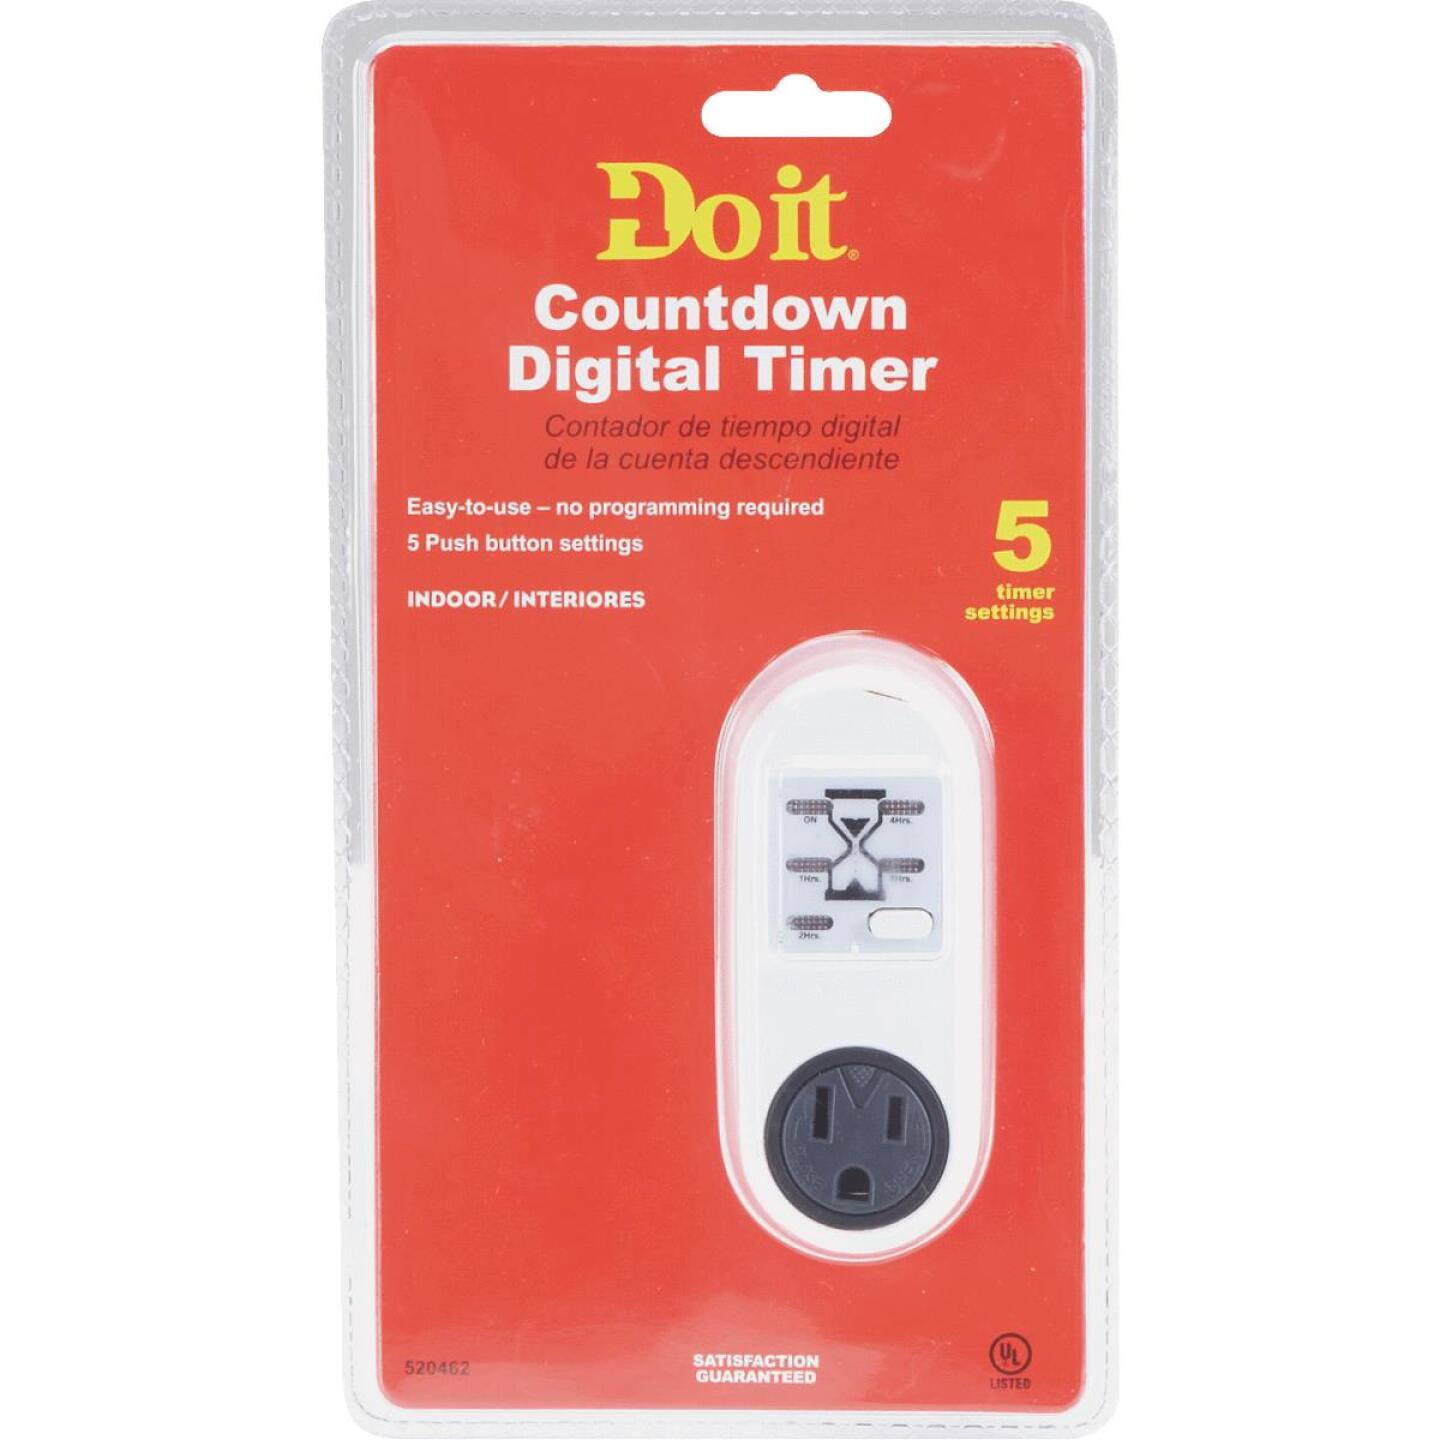 Do it 125V Countdown Digital Timer Image 2